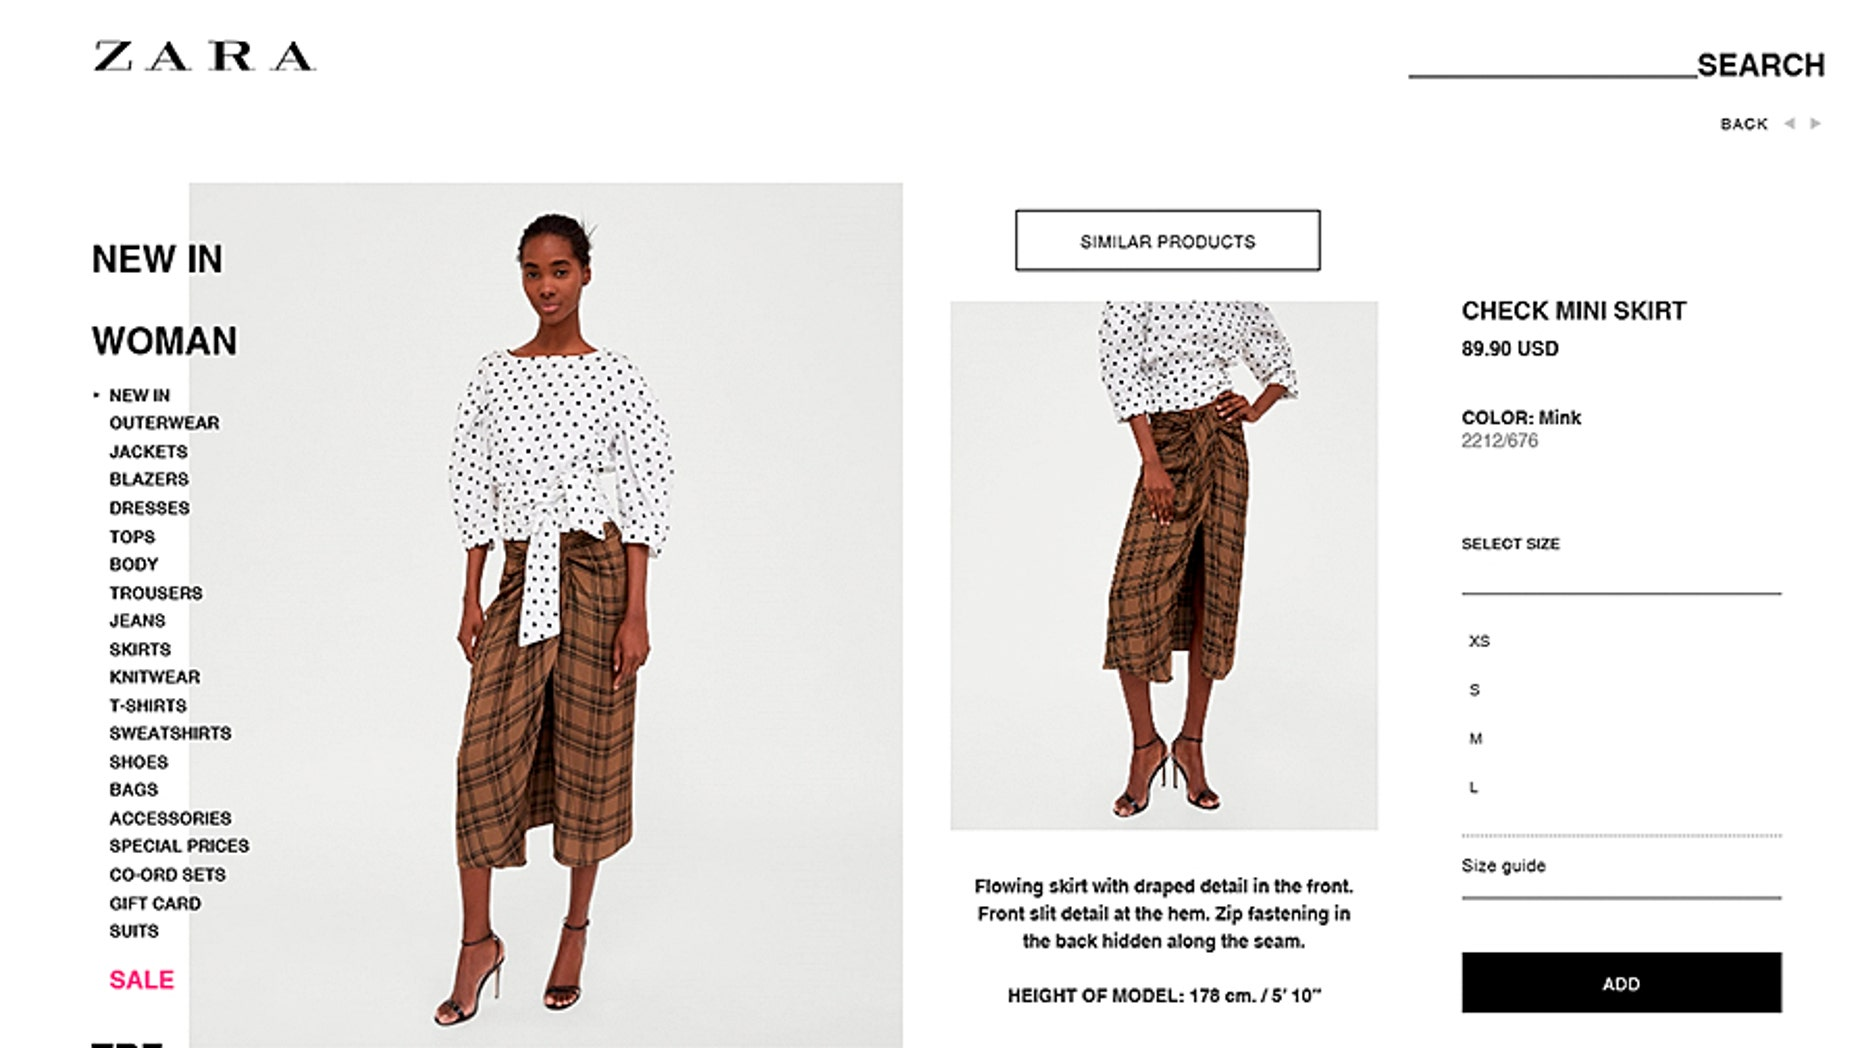 """Zara is being accused of cultural appropriation on social media for its """"check mini skirt,"""" which many say looks like a lungi."""